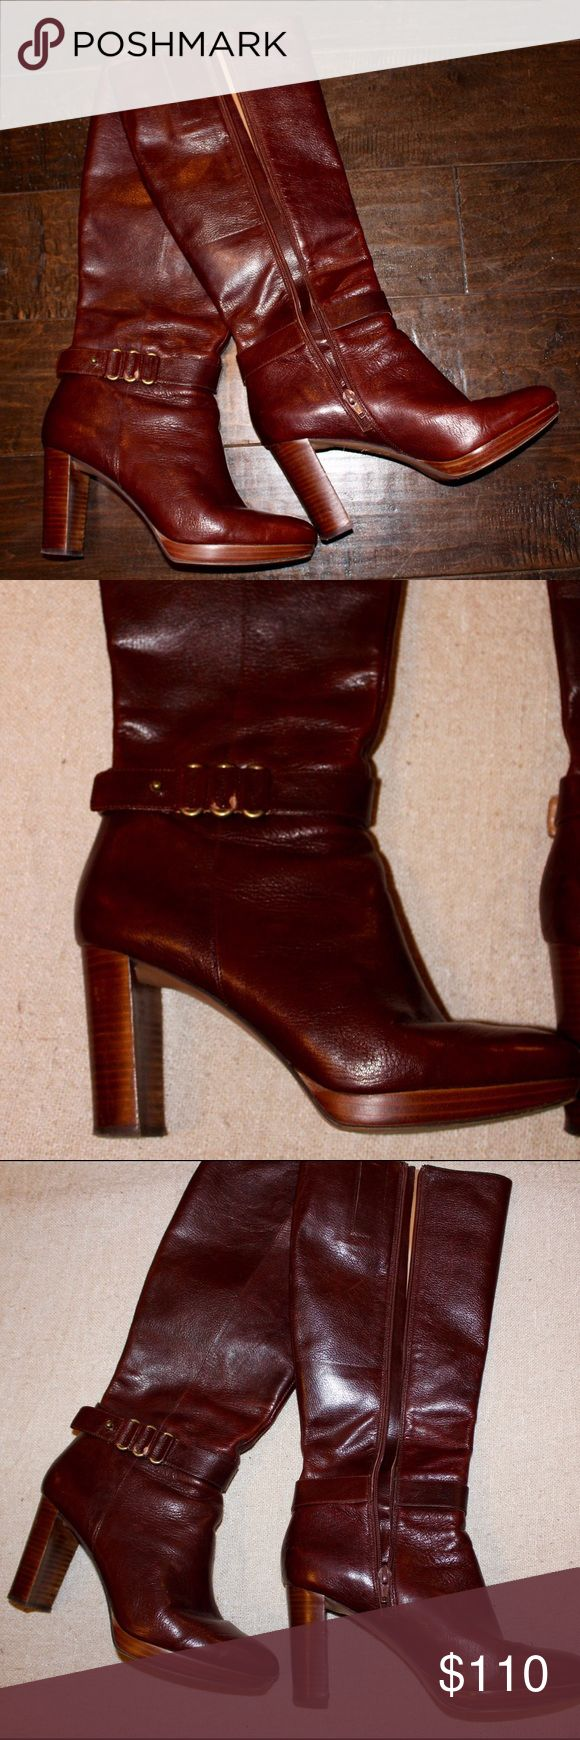 "Nine West Brown Leather heeled boots. Size 9. Nine West Brown Leather zip up, heeled boots. Women's size 9. 3"" heel. Barely worn- super comfy, zips up to just under the knee. Beautiful brown color! Nine West Shoes Heeled Boots"